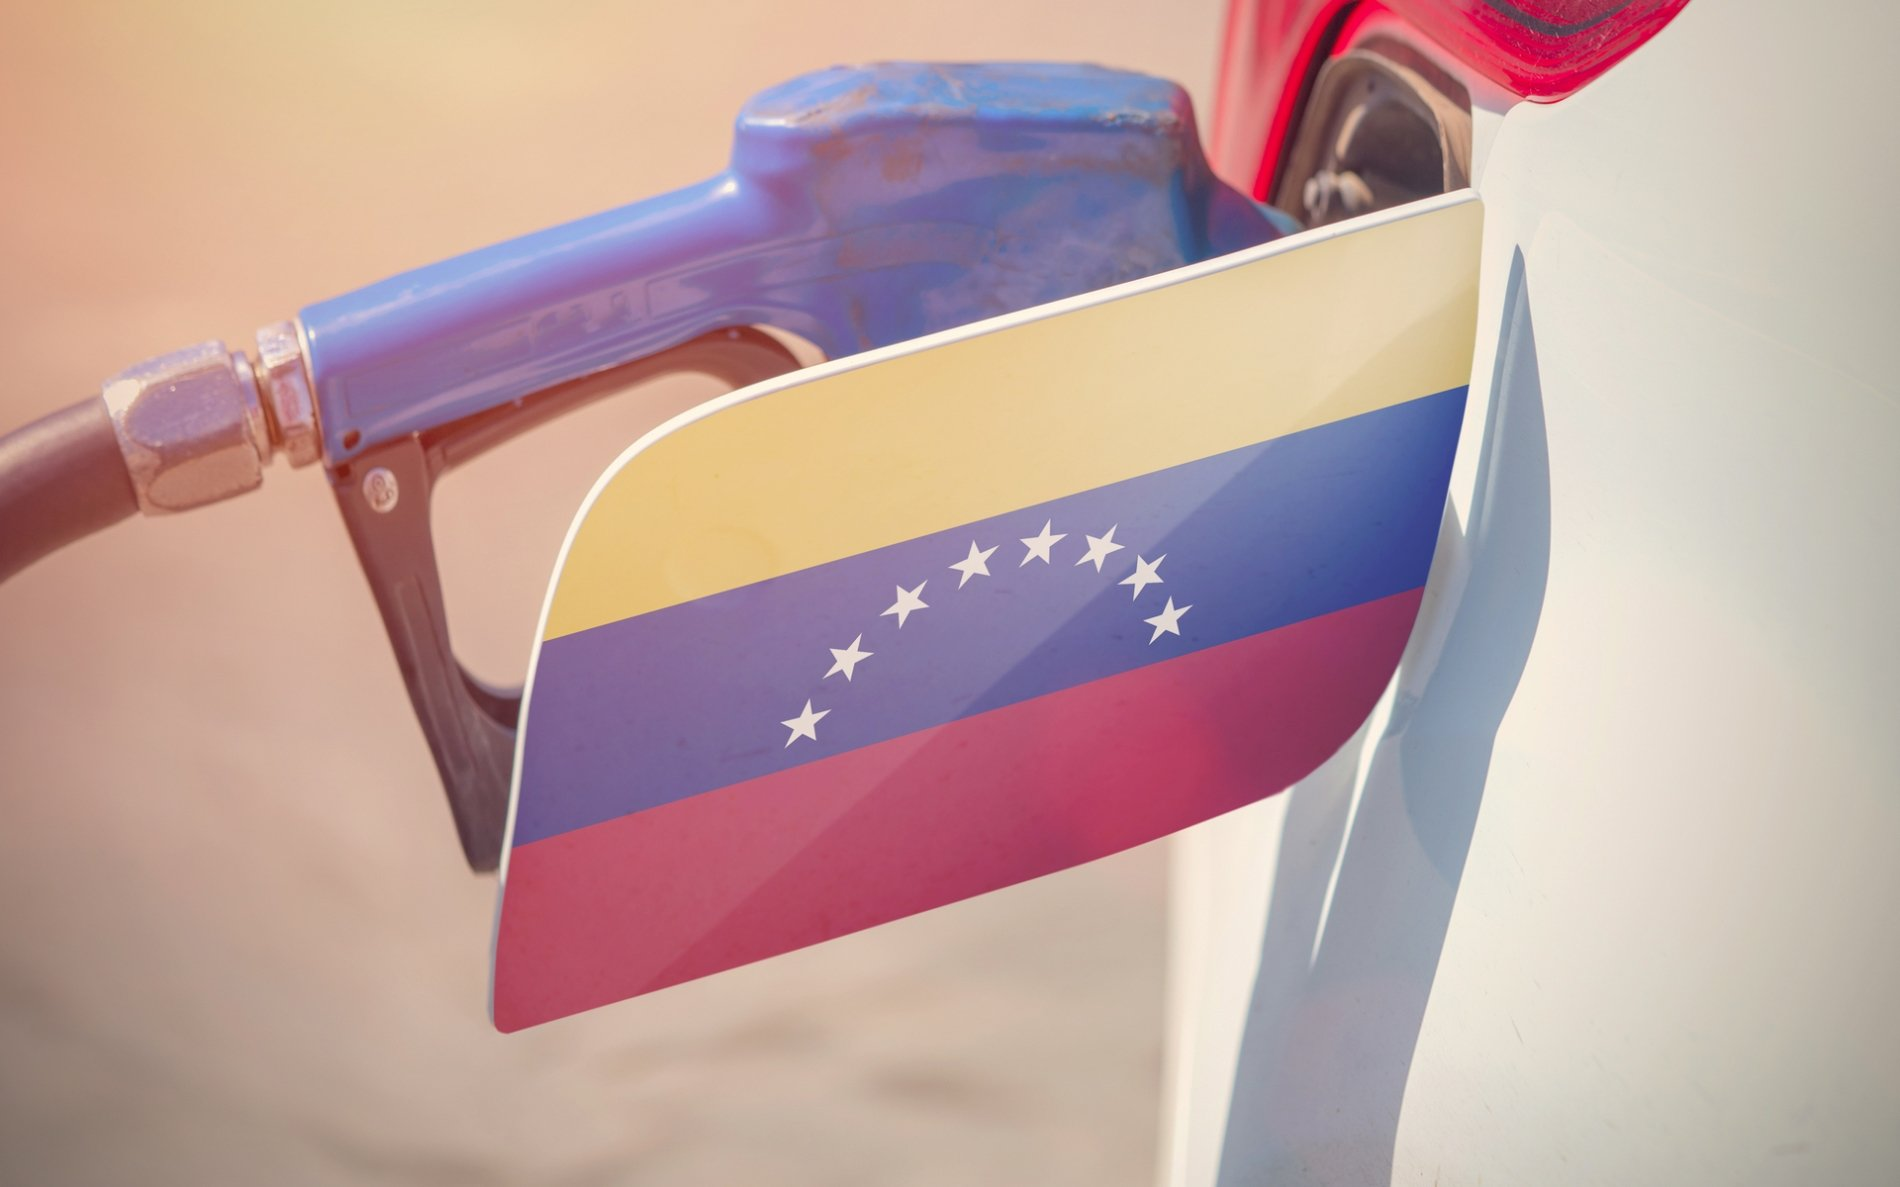 Venezuela slashes five zeroes from currency